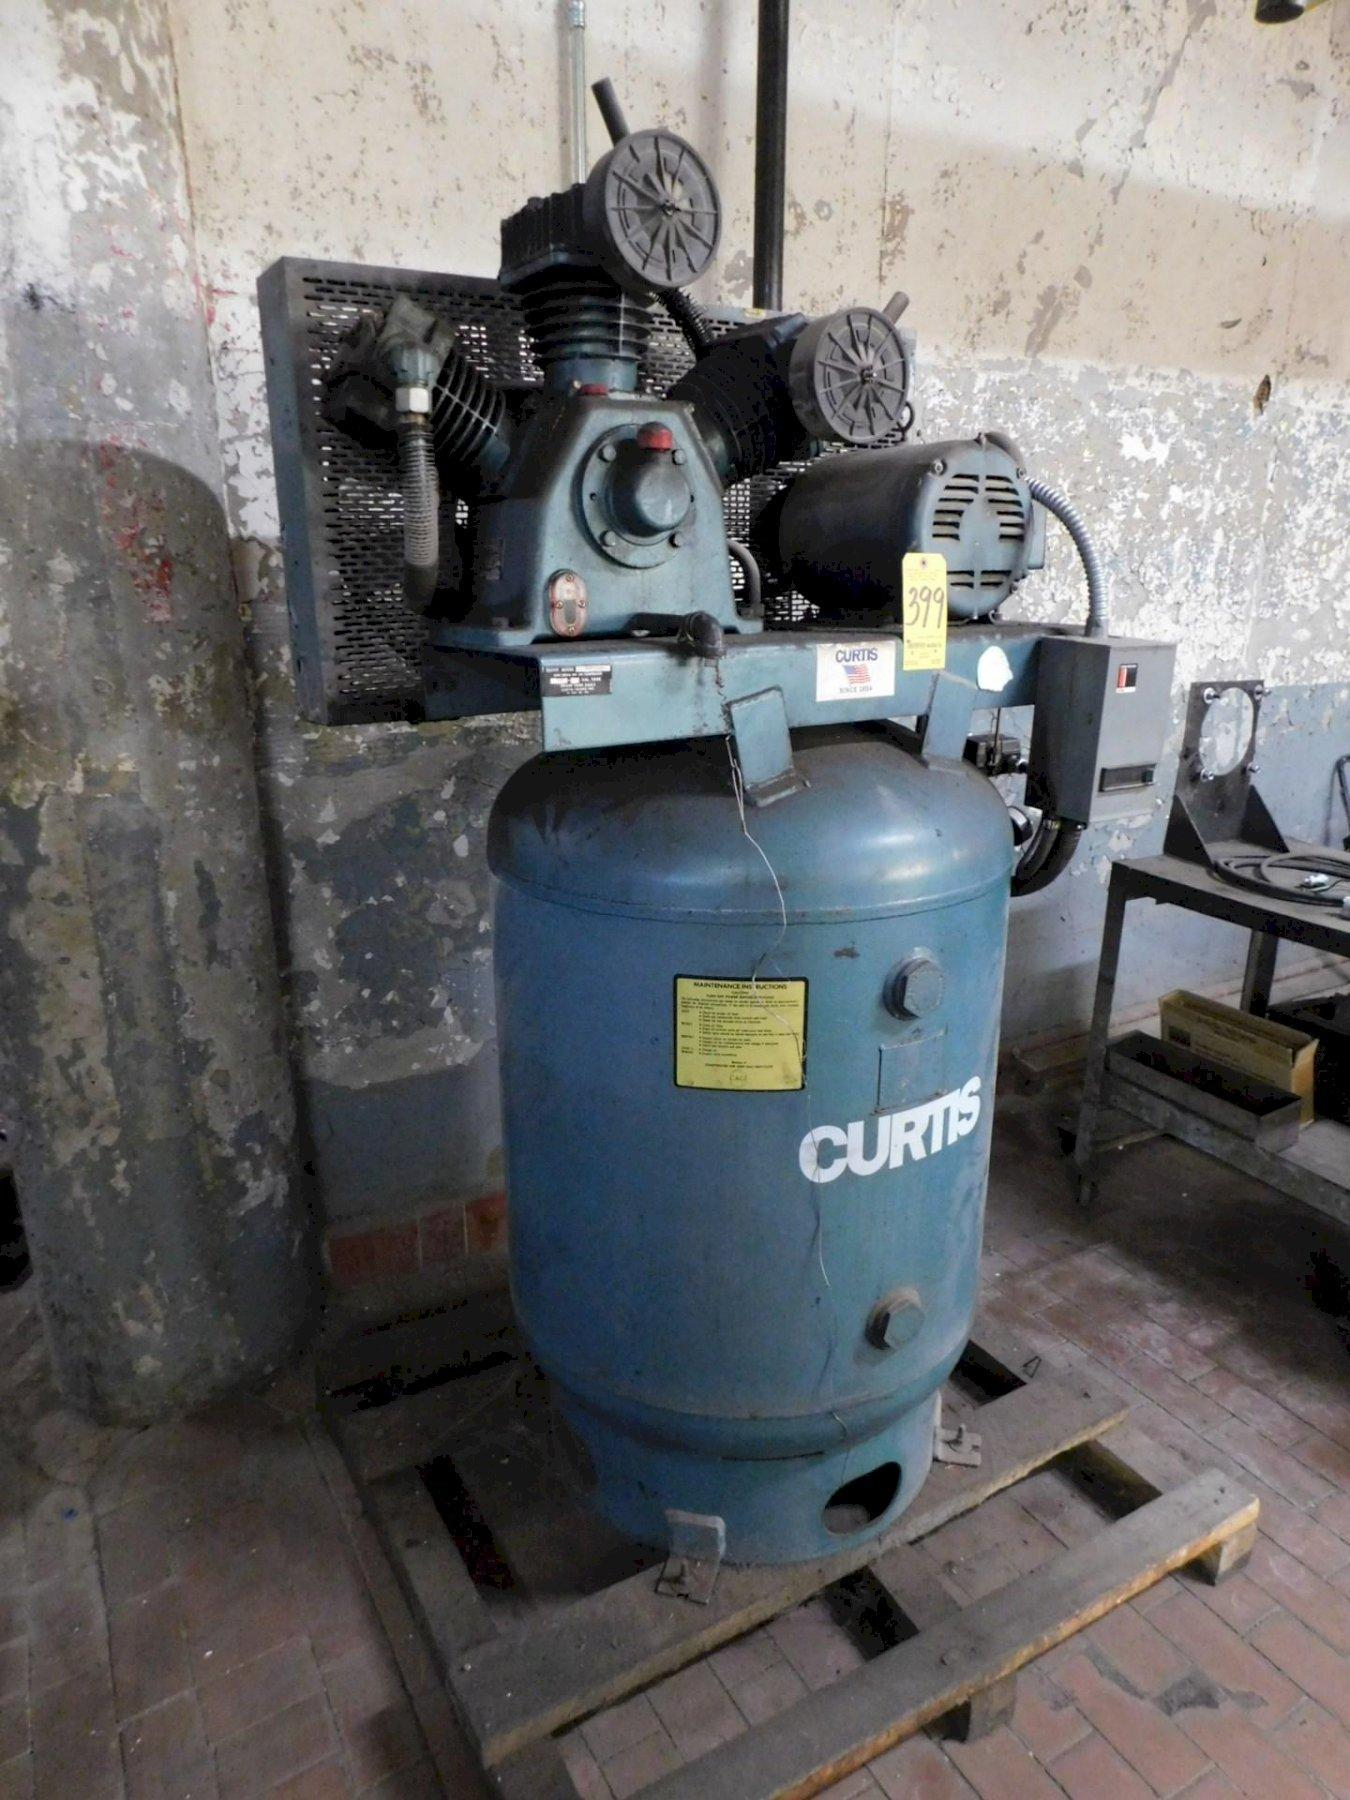 10 HP Curtis Air Compressor No. 10VT12-AS, 34 CFM @175 PSI, Three Cylinder-Two Stage,  120 Gallon Vertical Tank